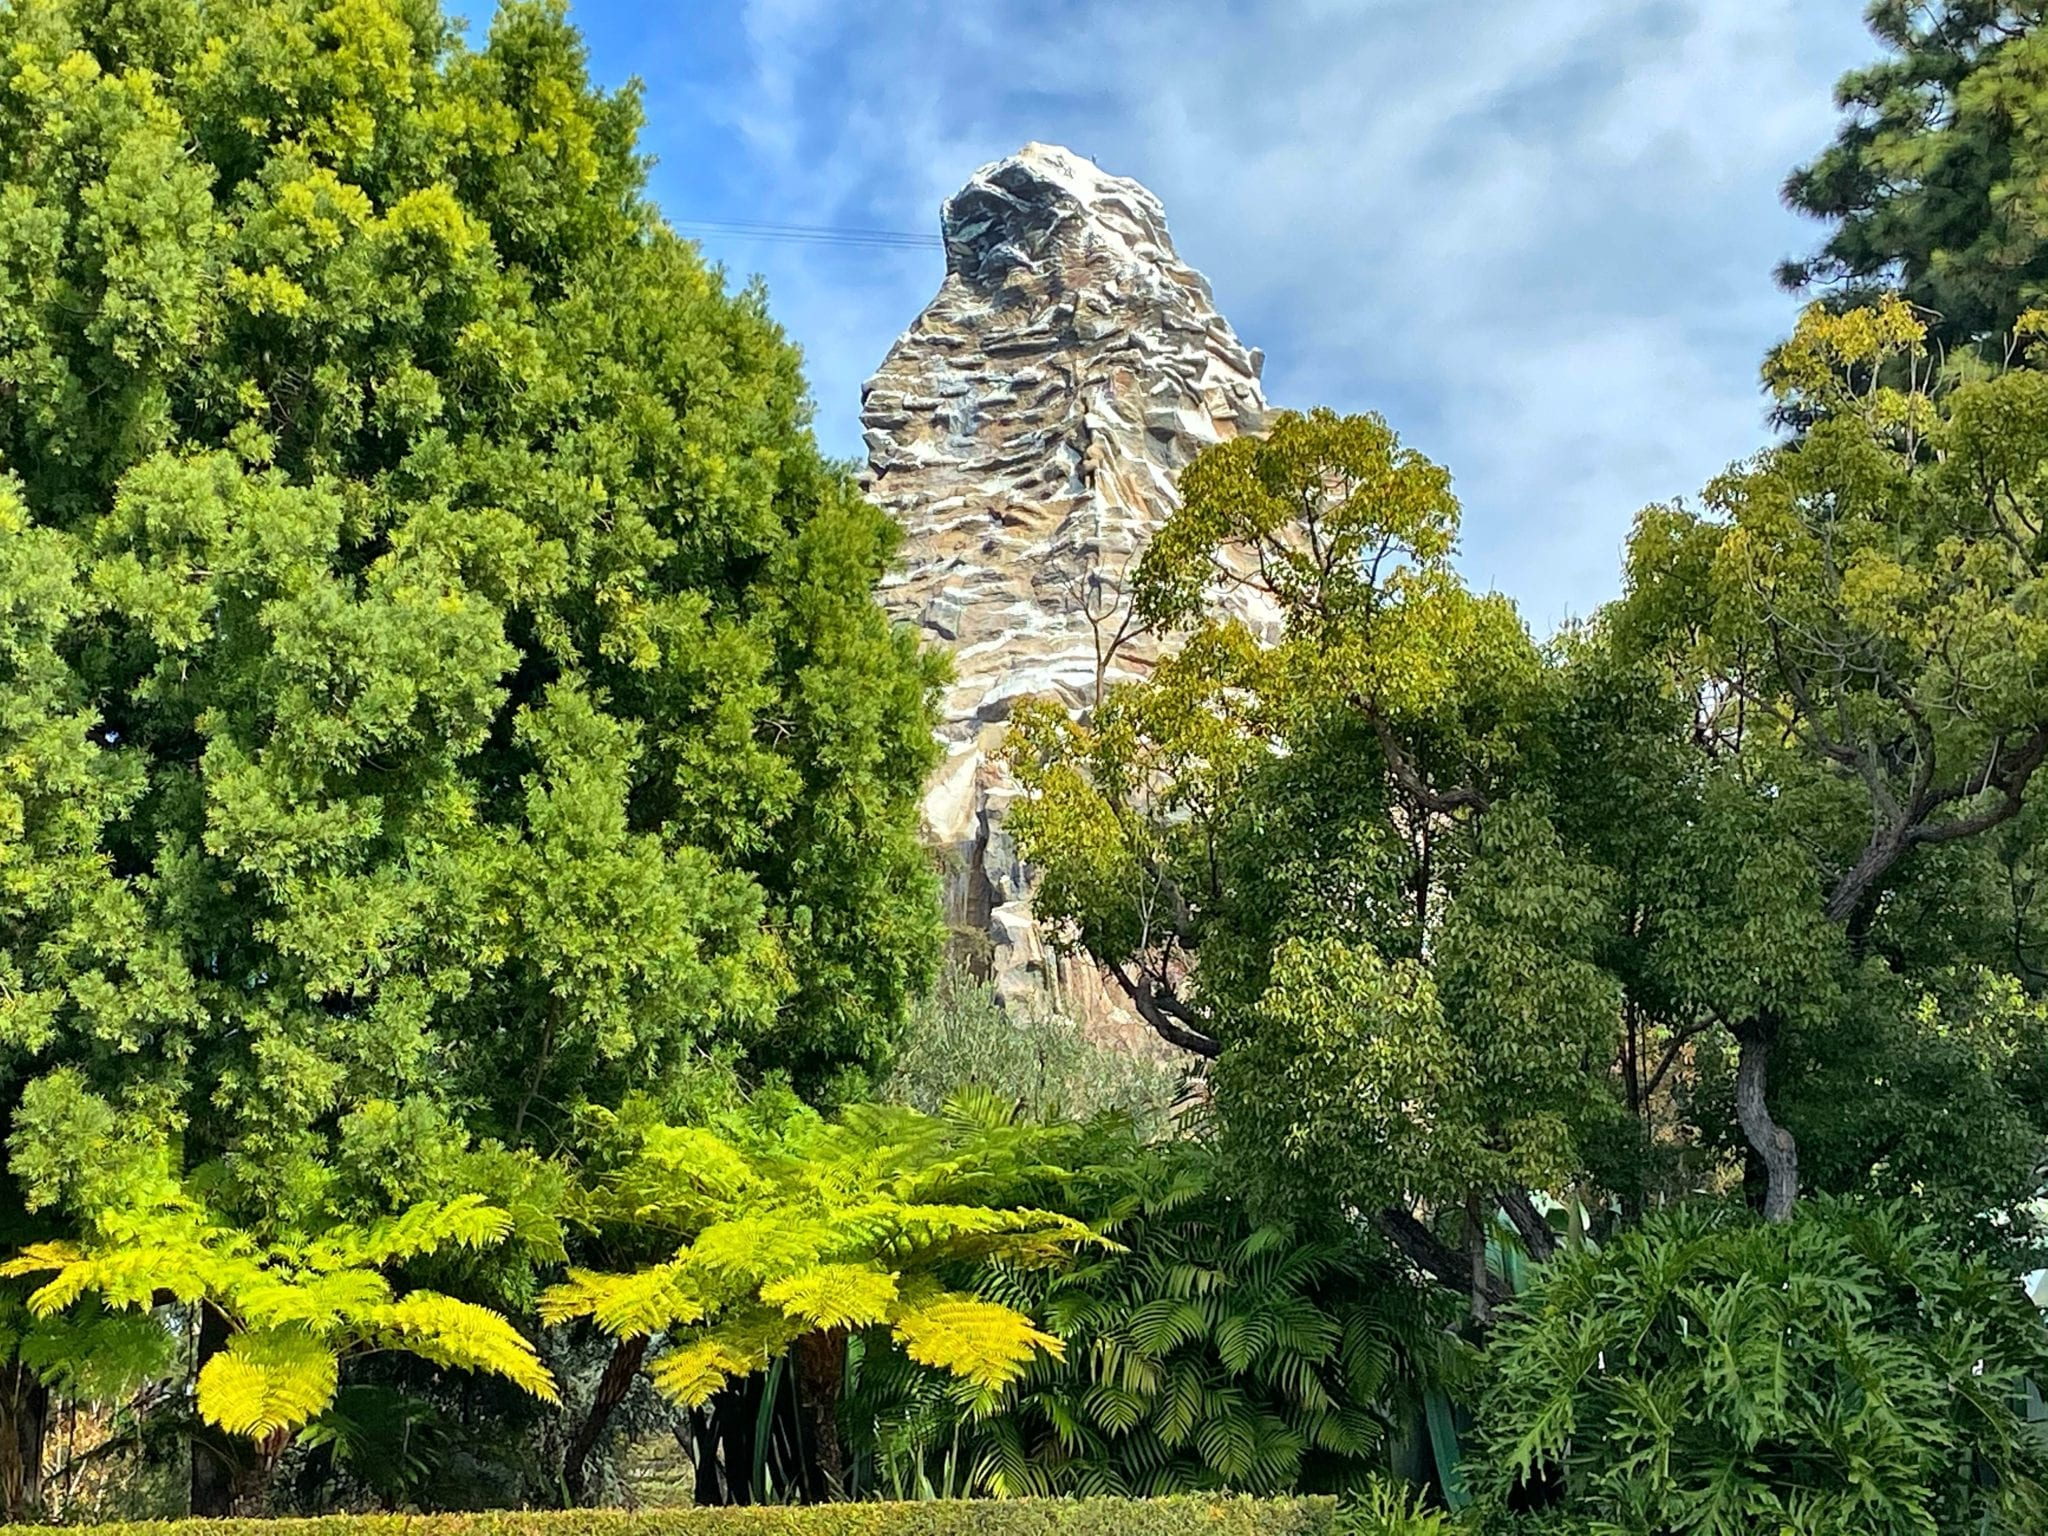 Matterhorn Mountain Disneyland